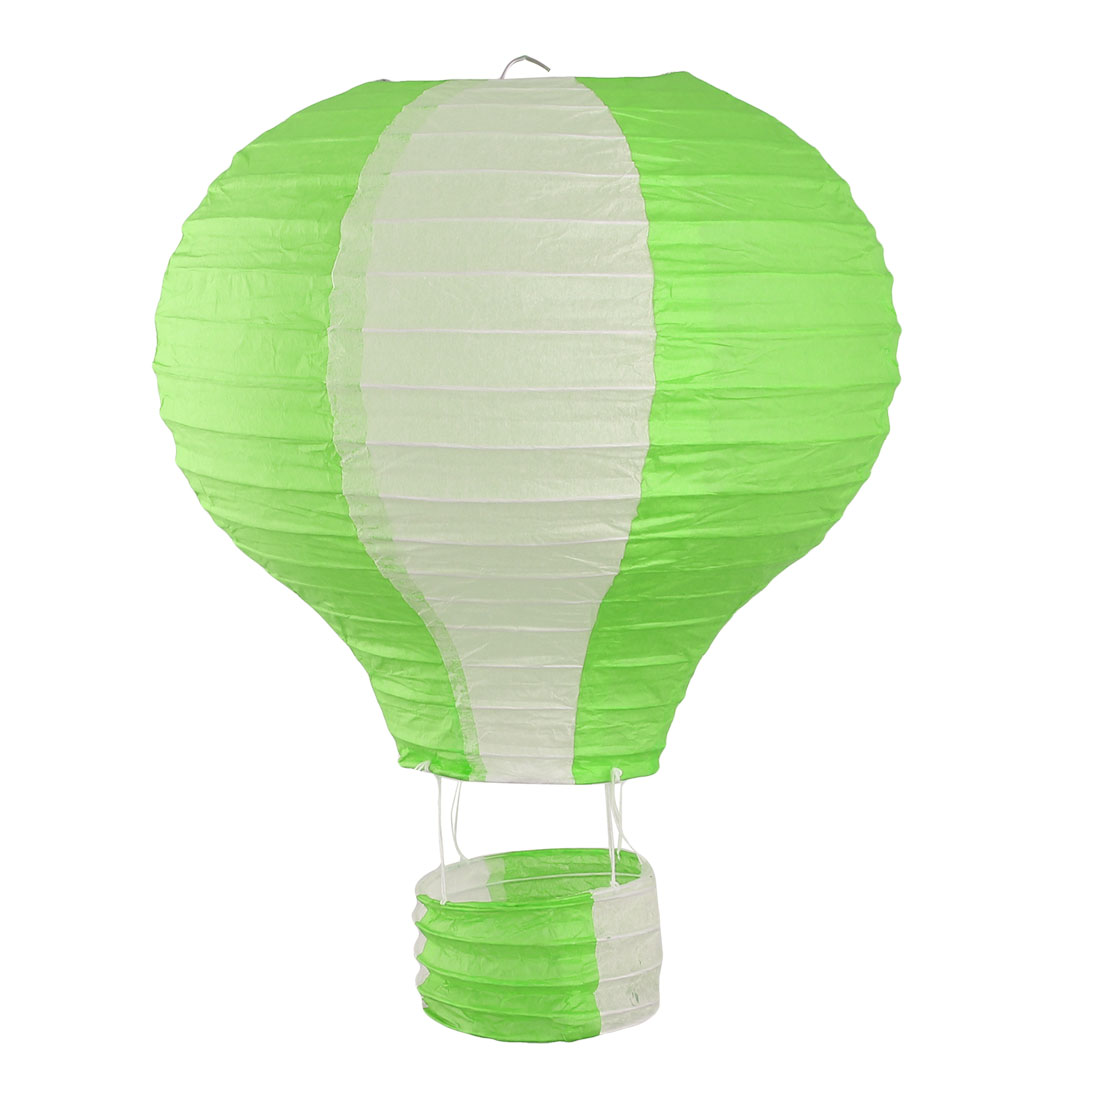 Restaurant Party Paper Lightless Hanging DIY Decor Hot Air Balloon Lantern Green White 10 Inch Dia